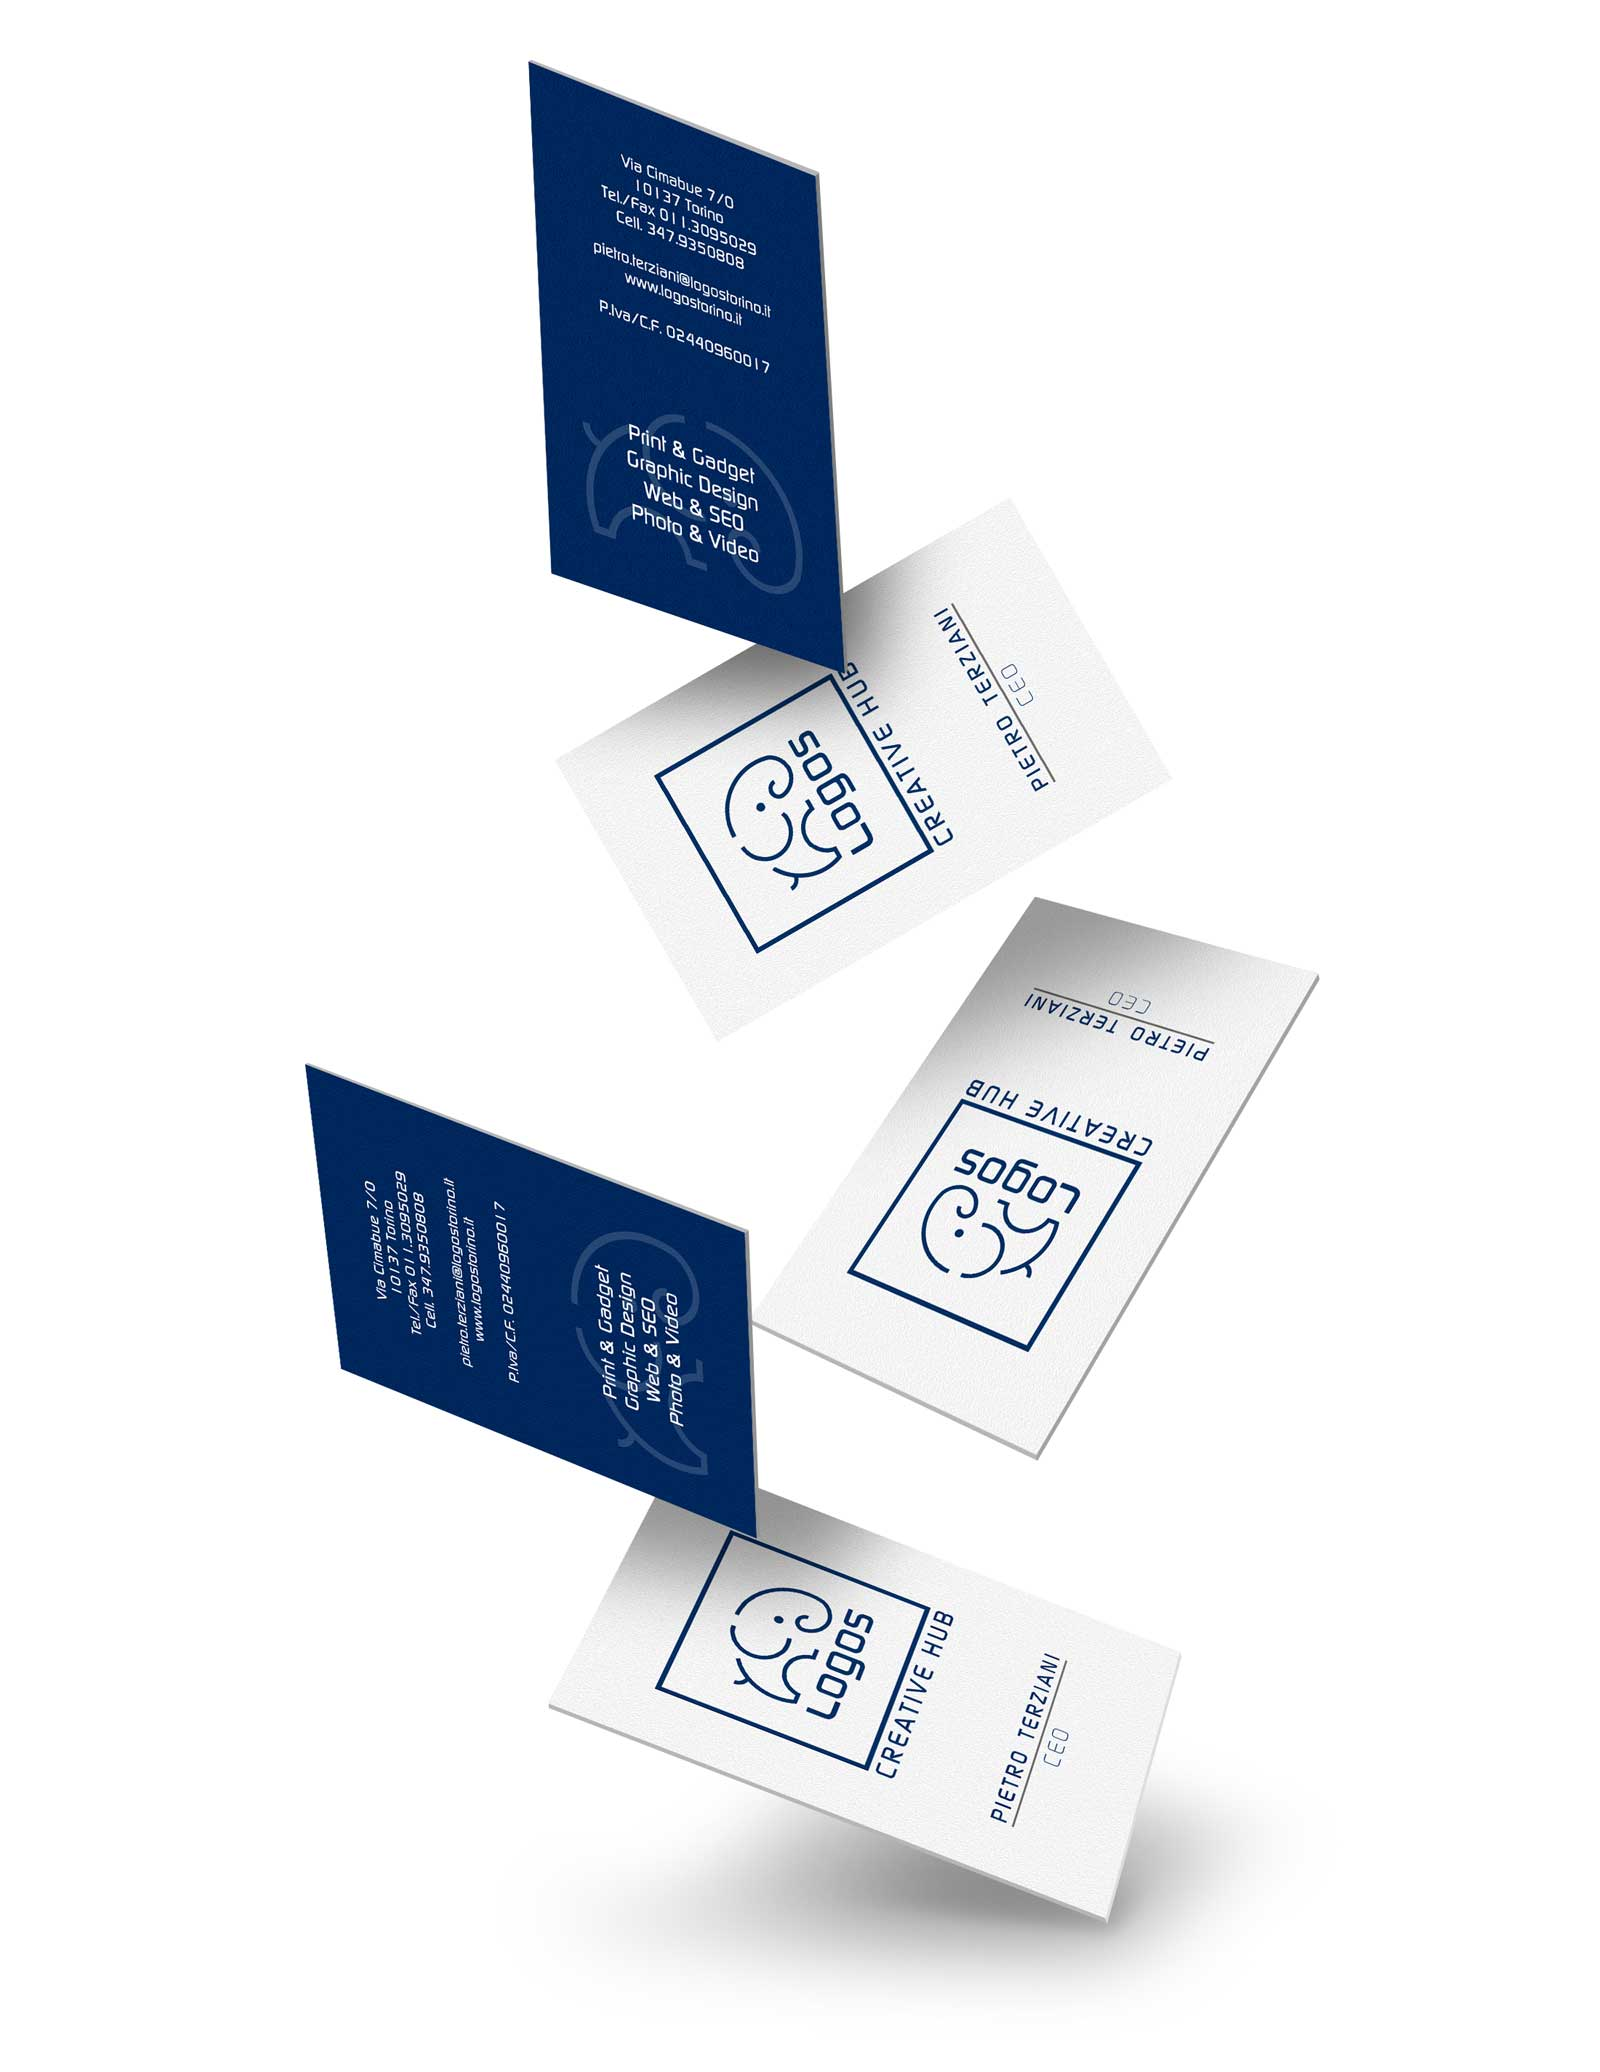 LOGOS_falling-business-card-mockups